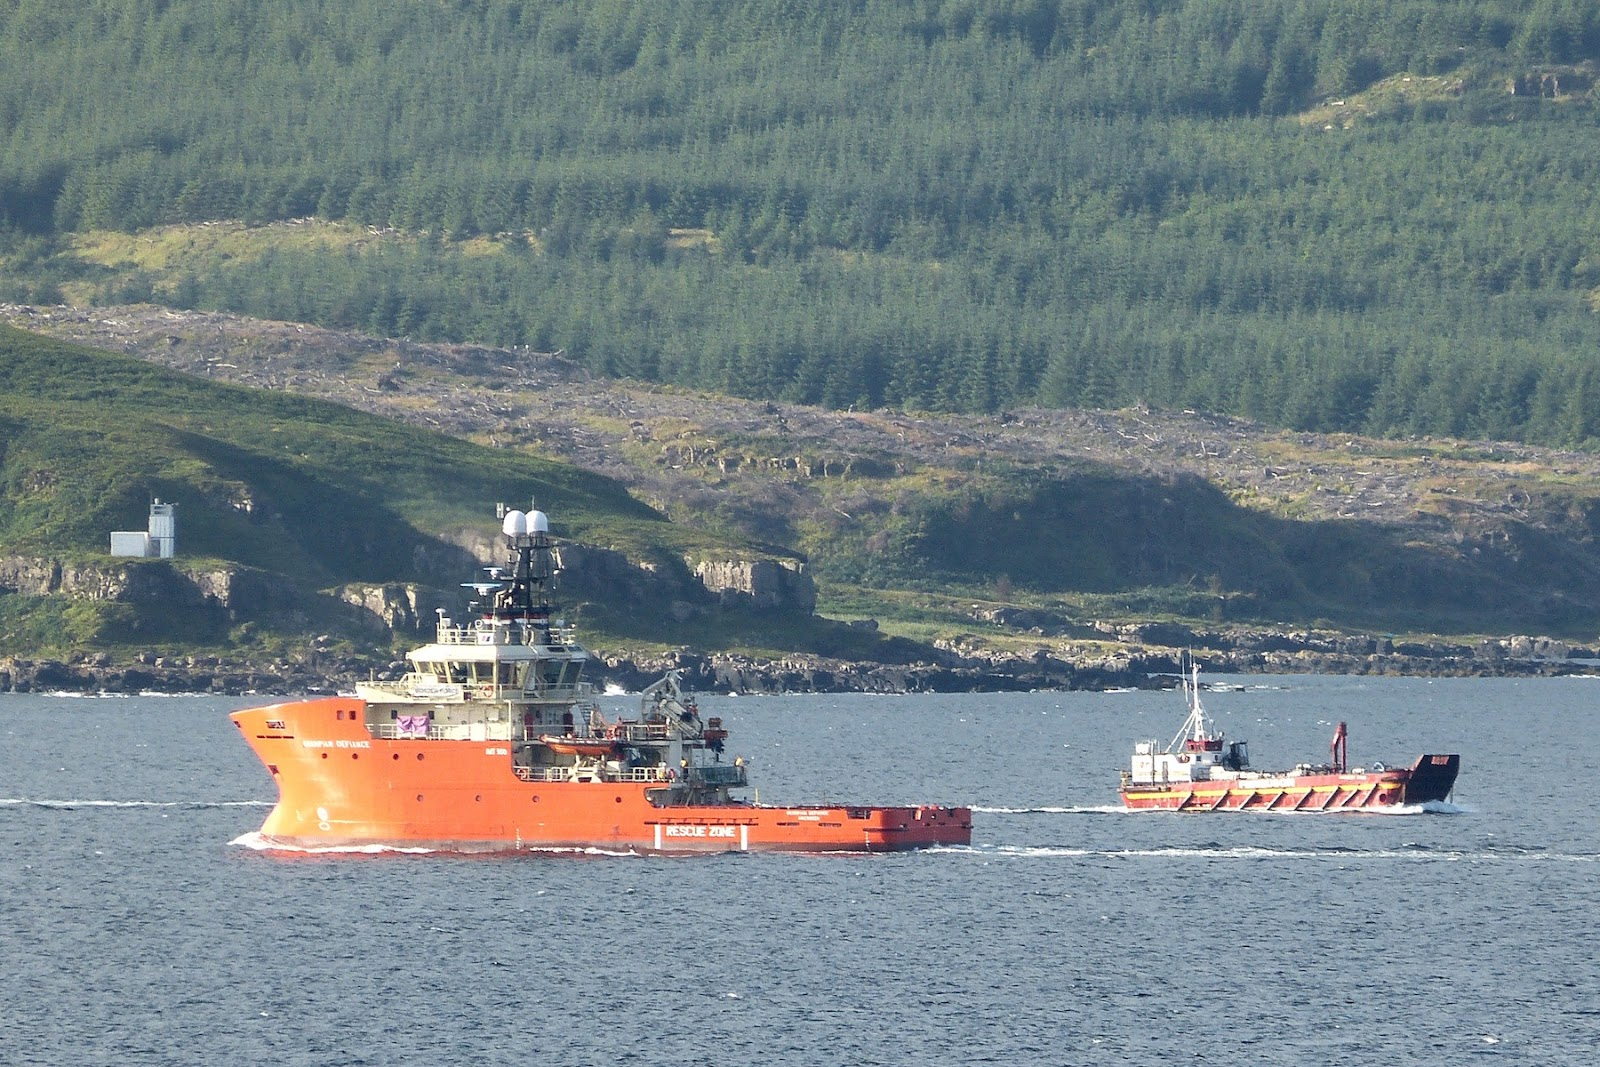 A Kilchoan Diary Ships In The Sound